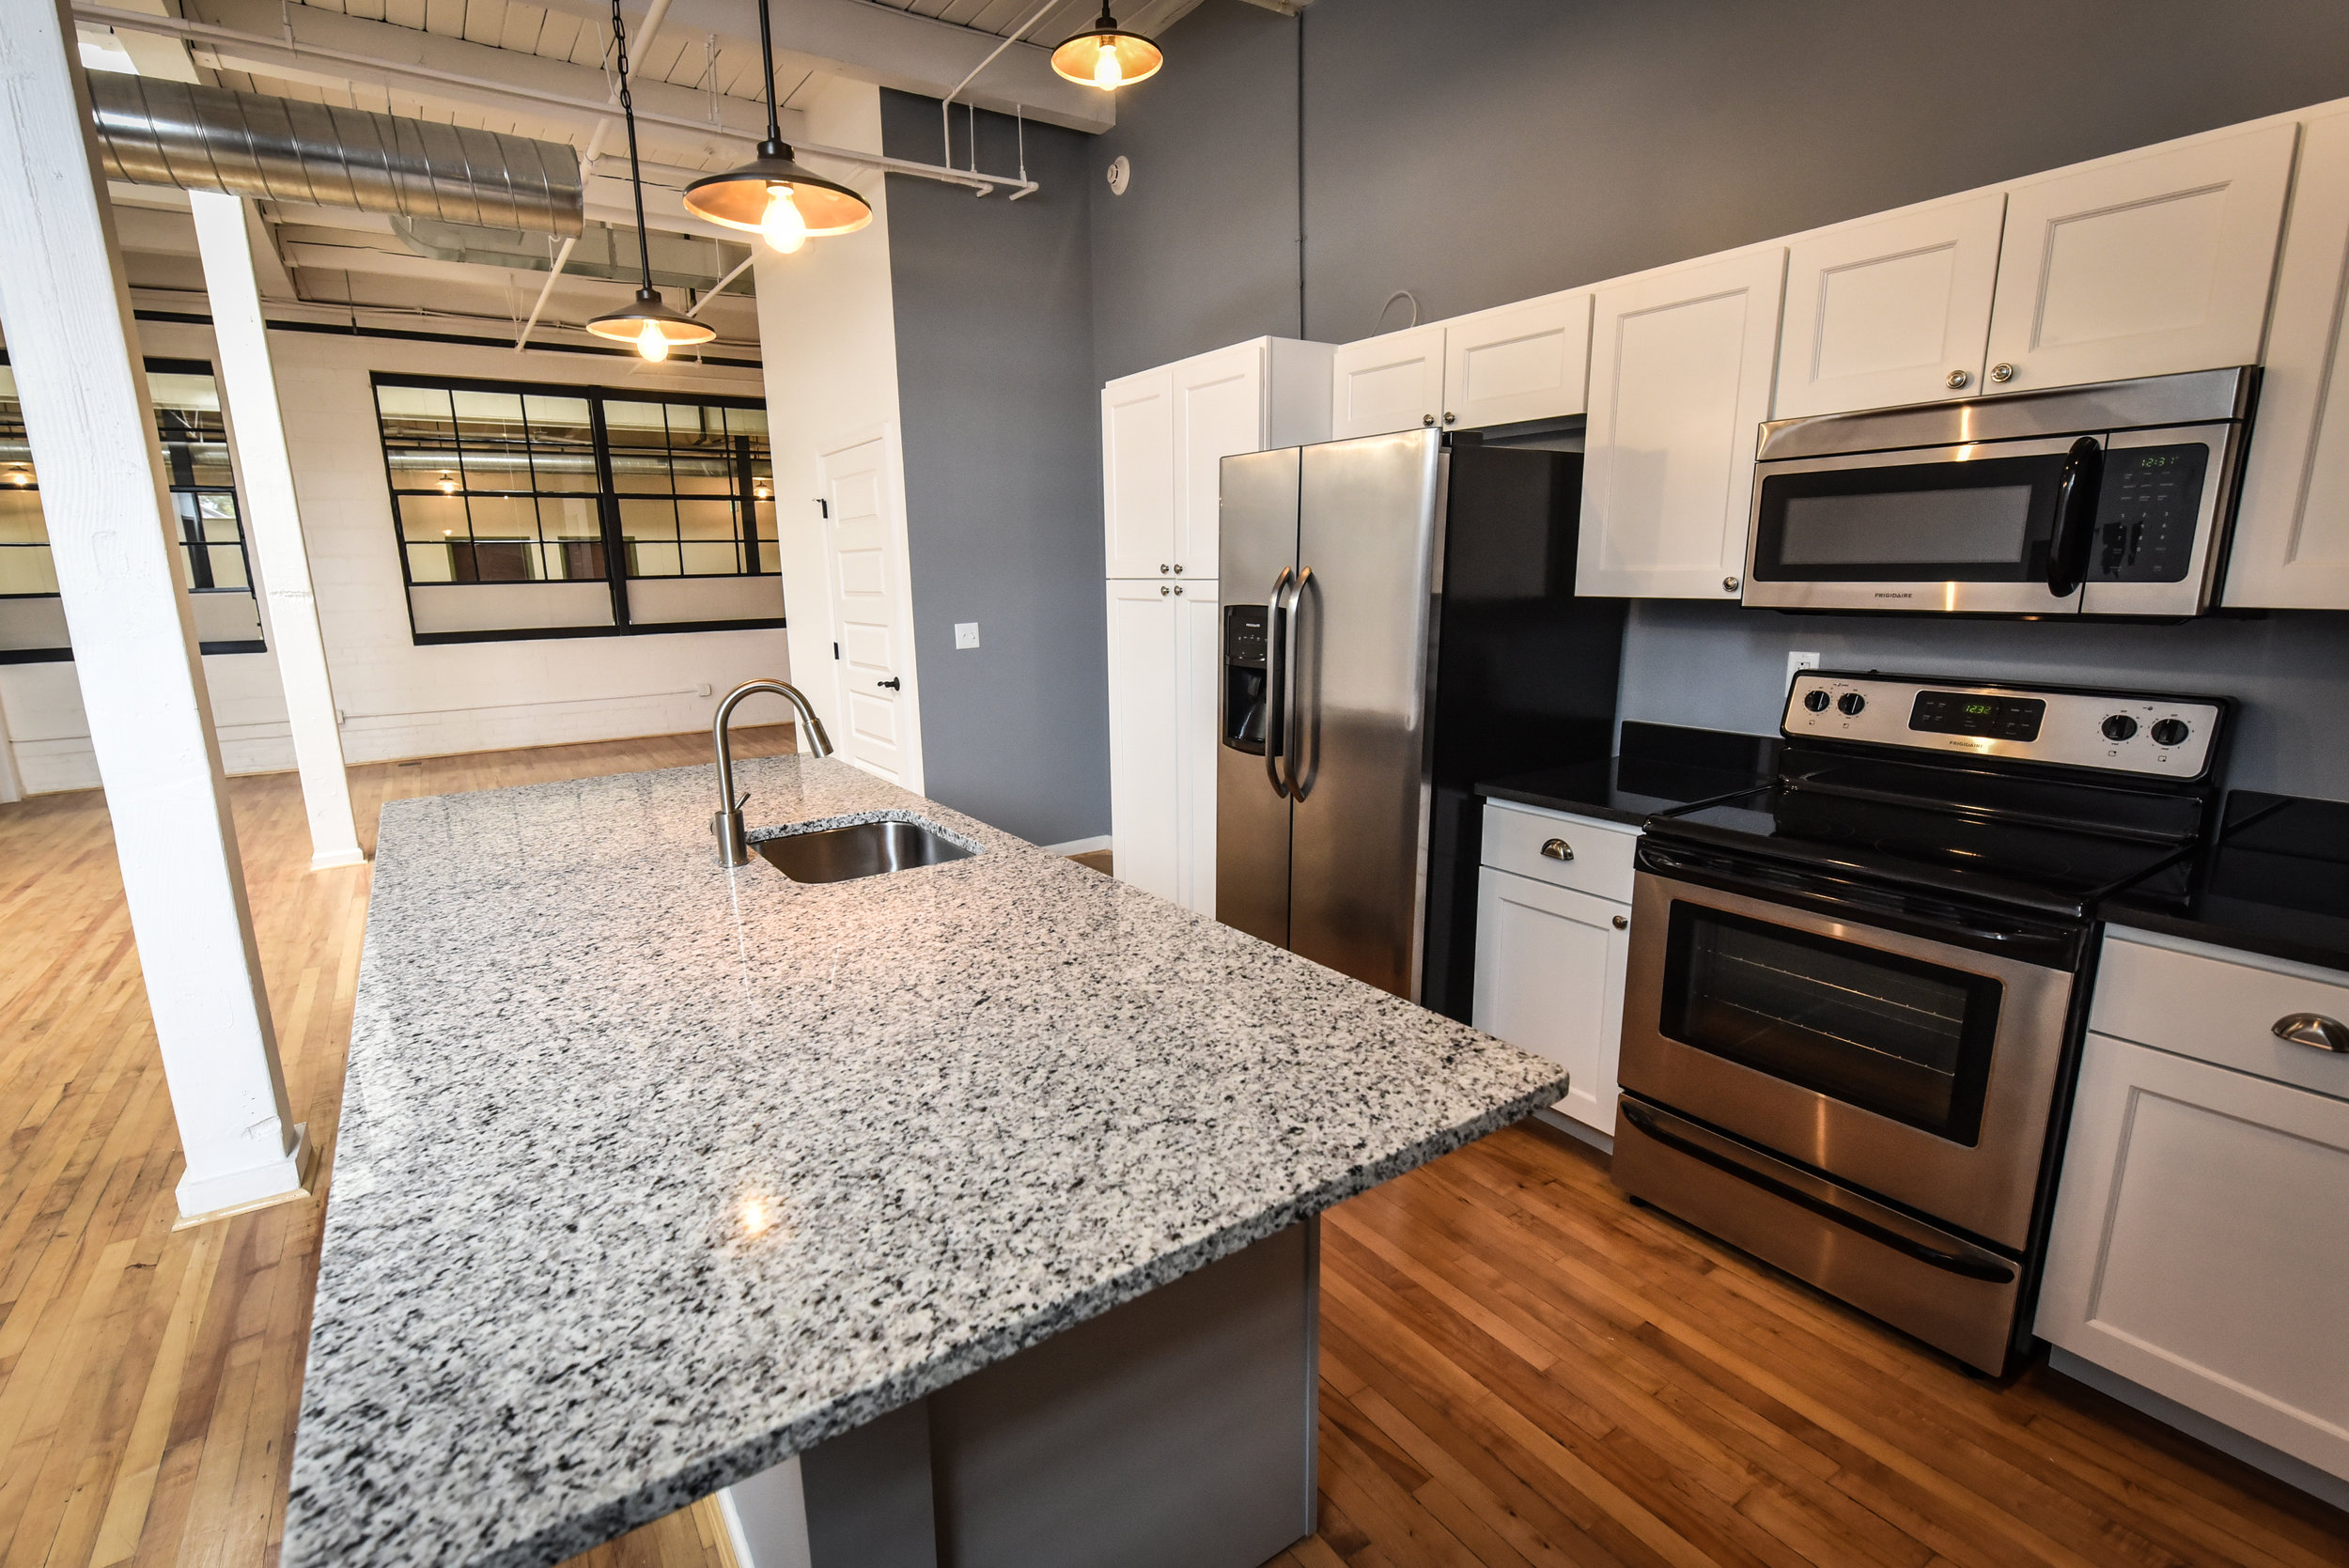 1255-lofts-kitchen-rochester-ny-rent.jpg